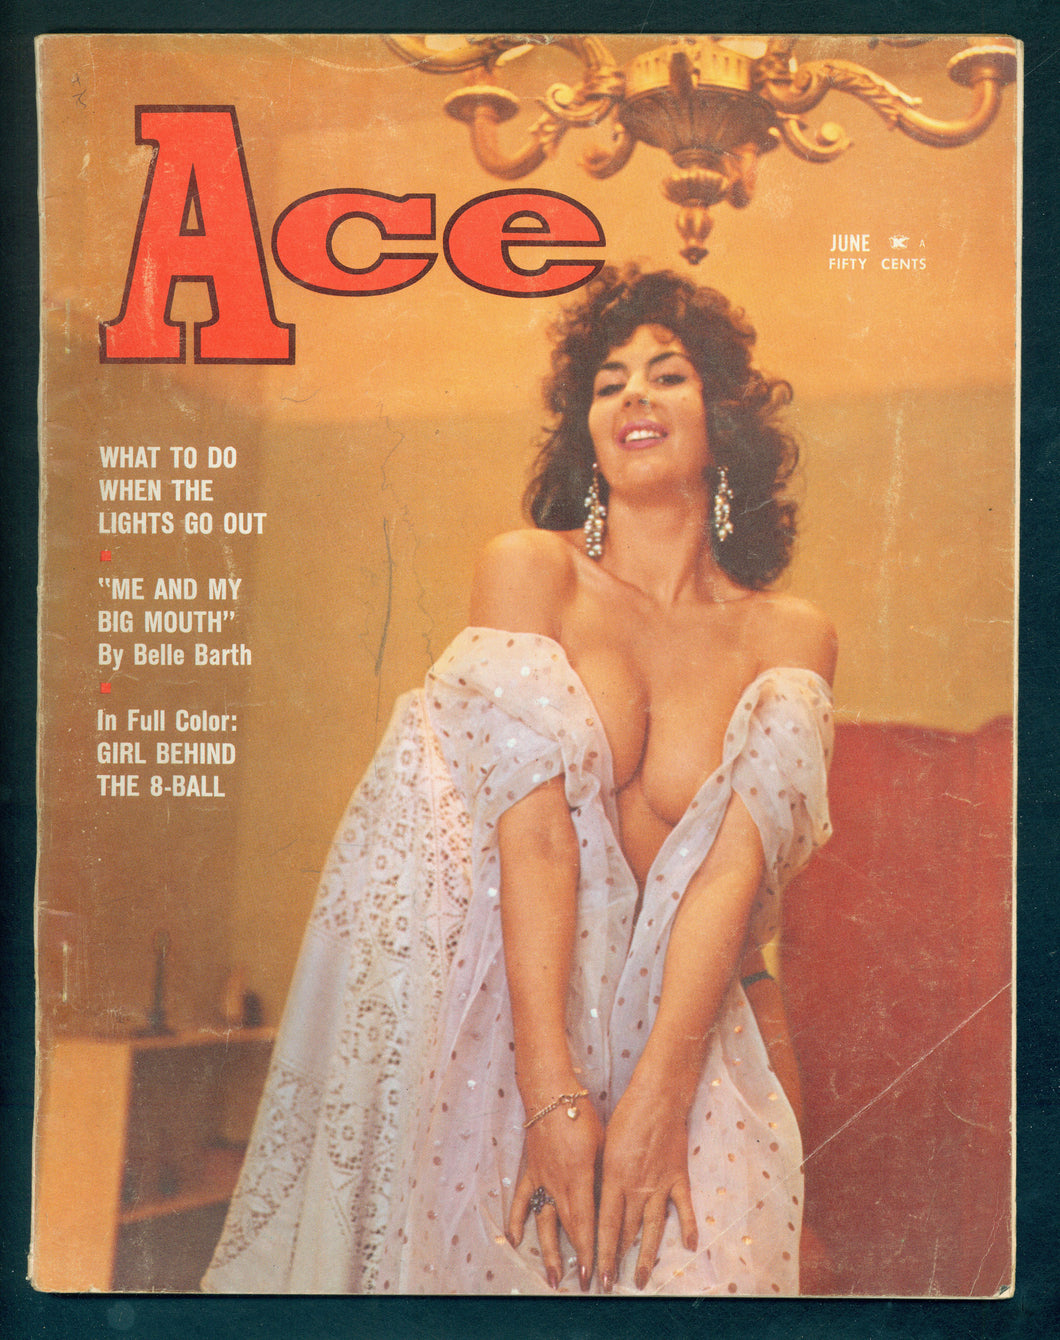 Ace Vol 6 No 1 June, 1962